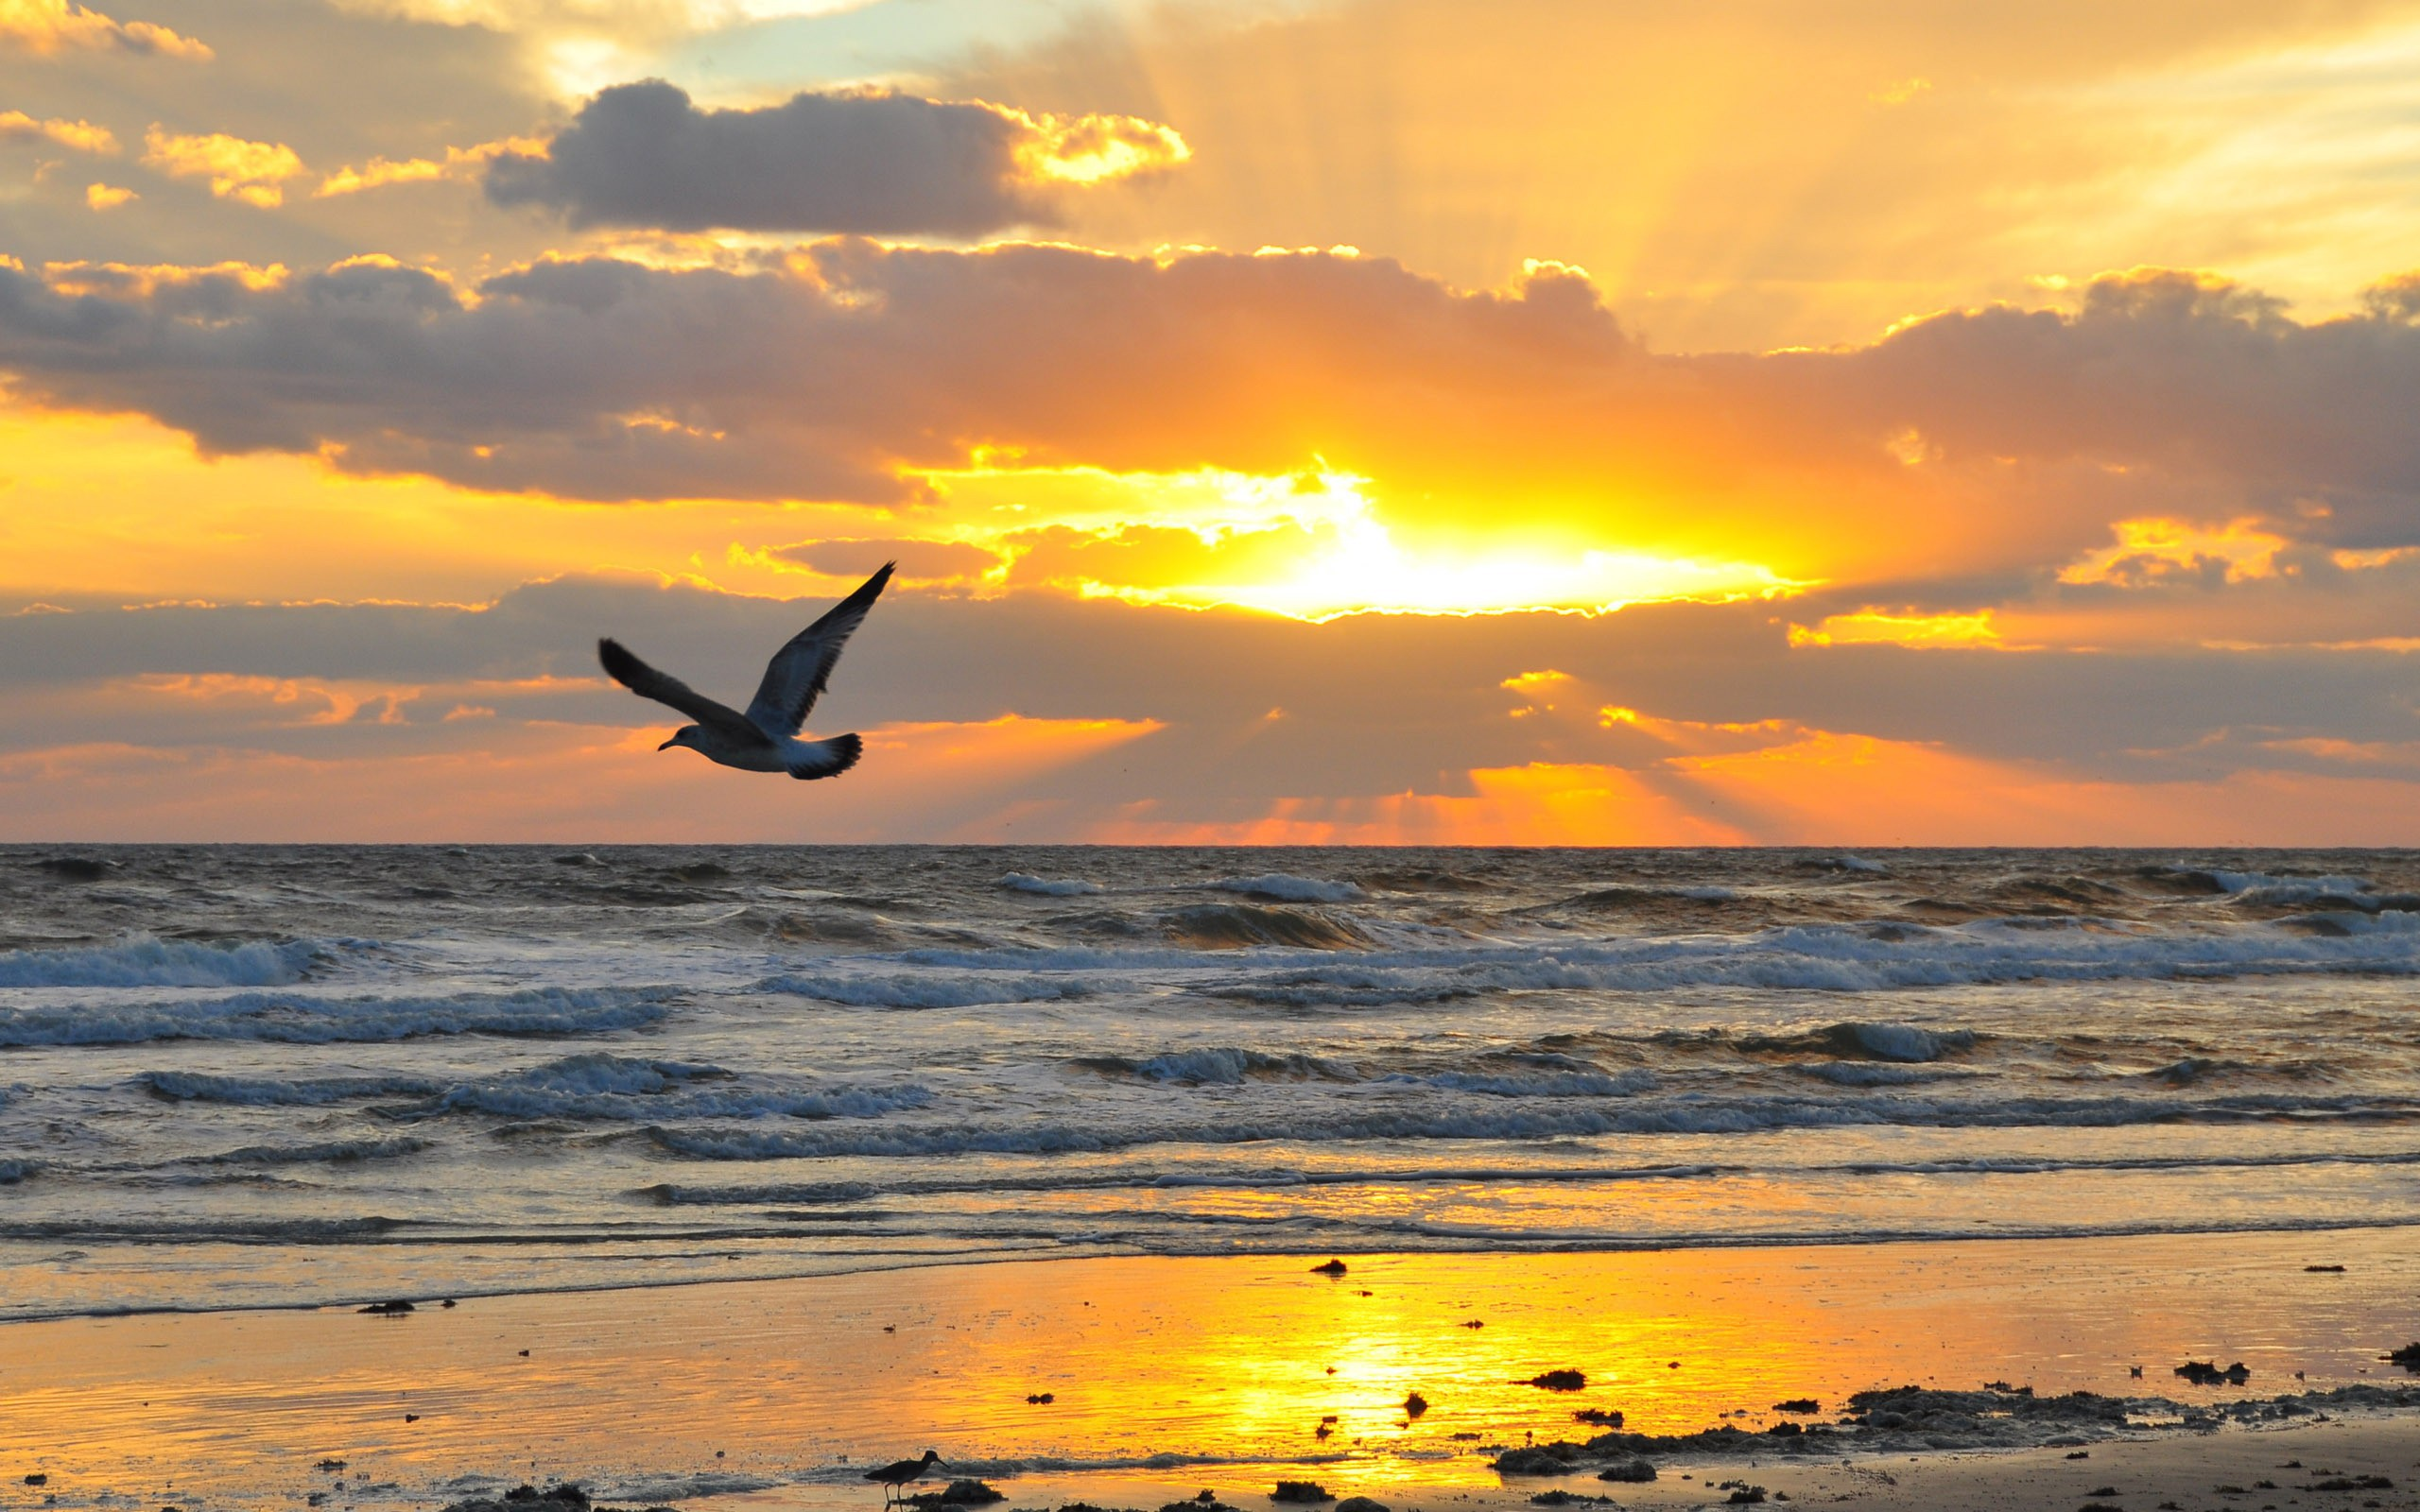 32919 download wallpaper Landscape, Sunset, Sea, Seagulls screensavers and pictures for free